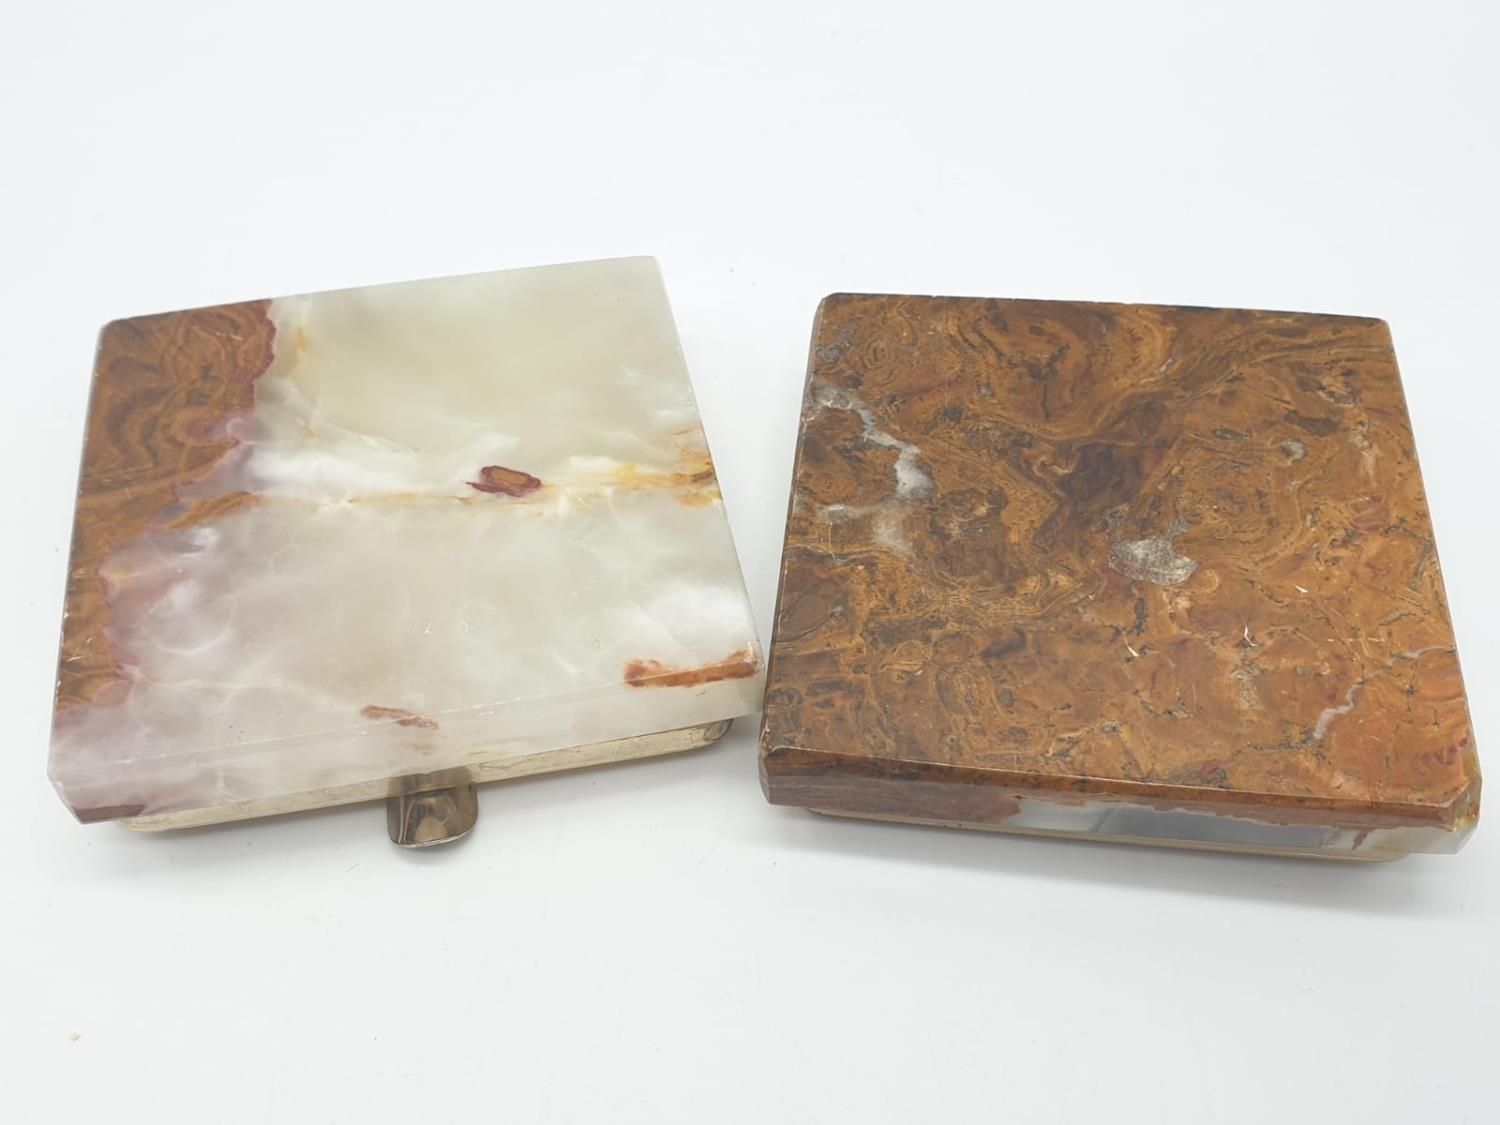 An onyx cigarette box, lighter and 2 onyx ash trays (small chip on cigarette box lid). - Image 16 of 16